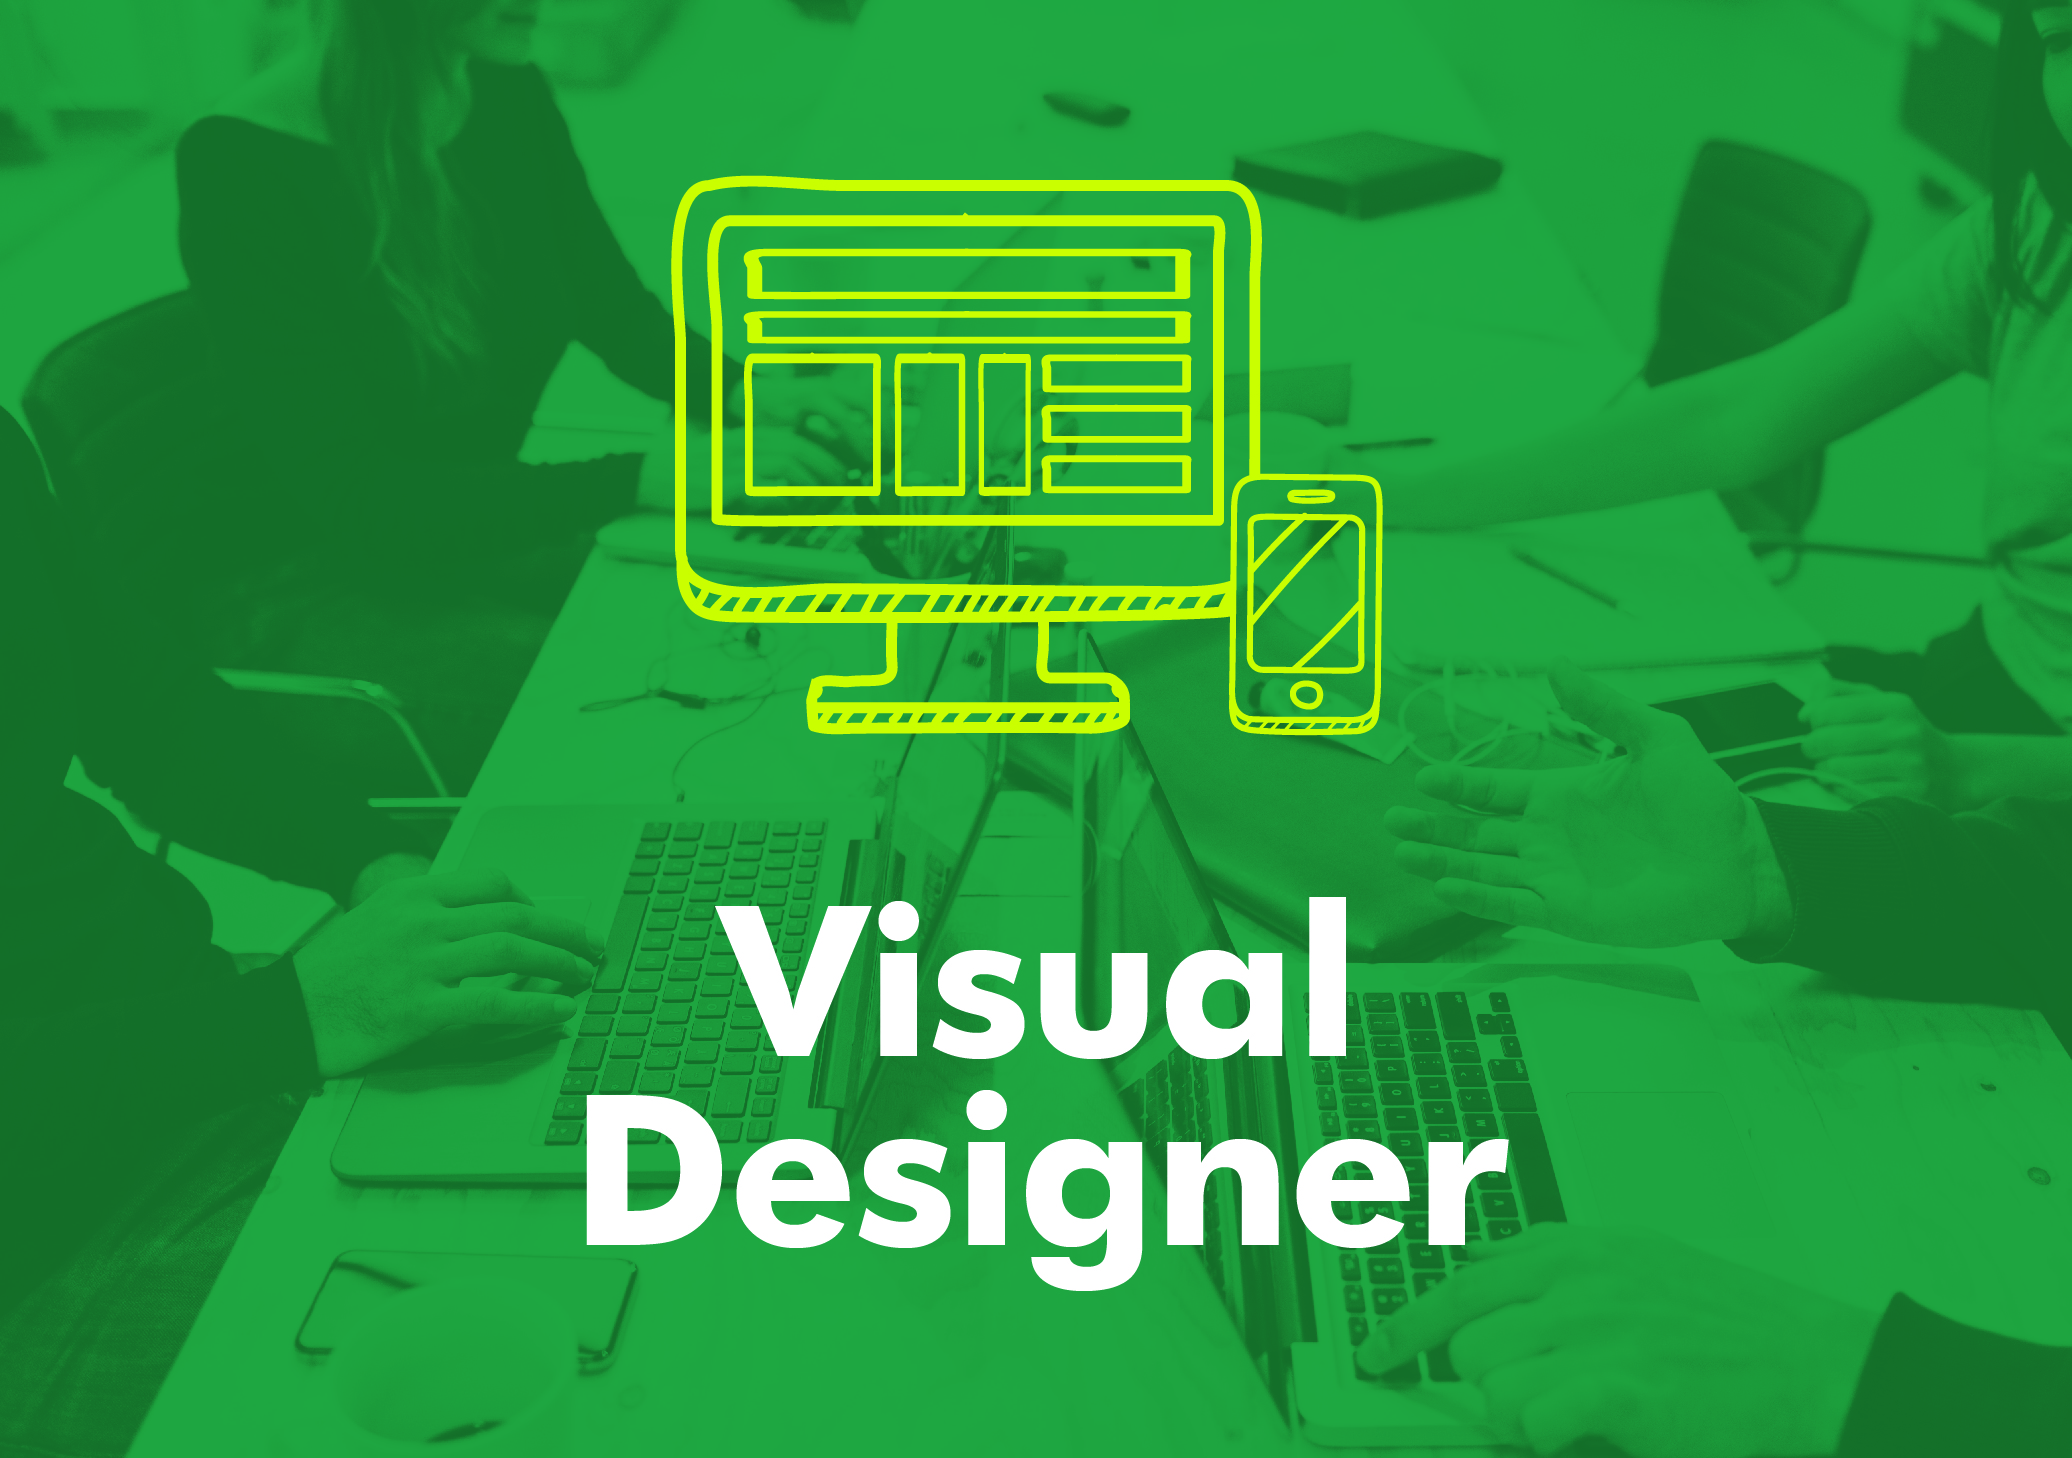 Visual Designer Job Description And Salary Robert Half